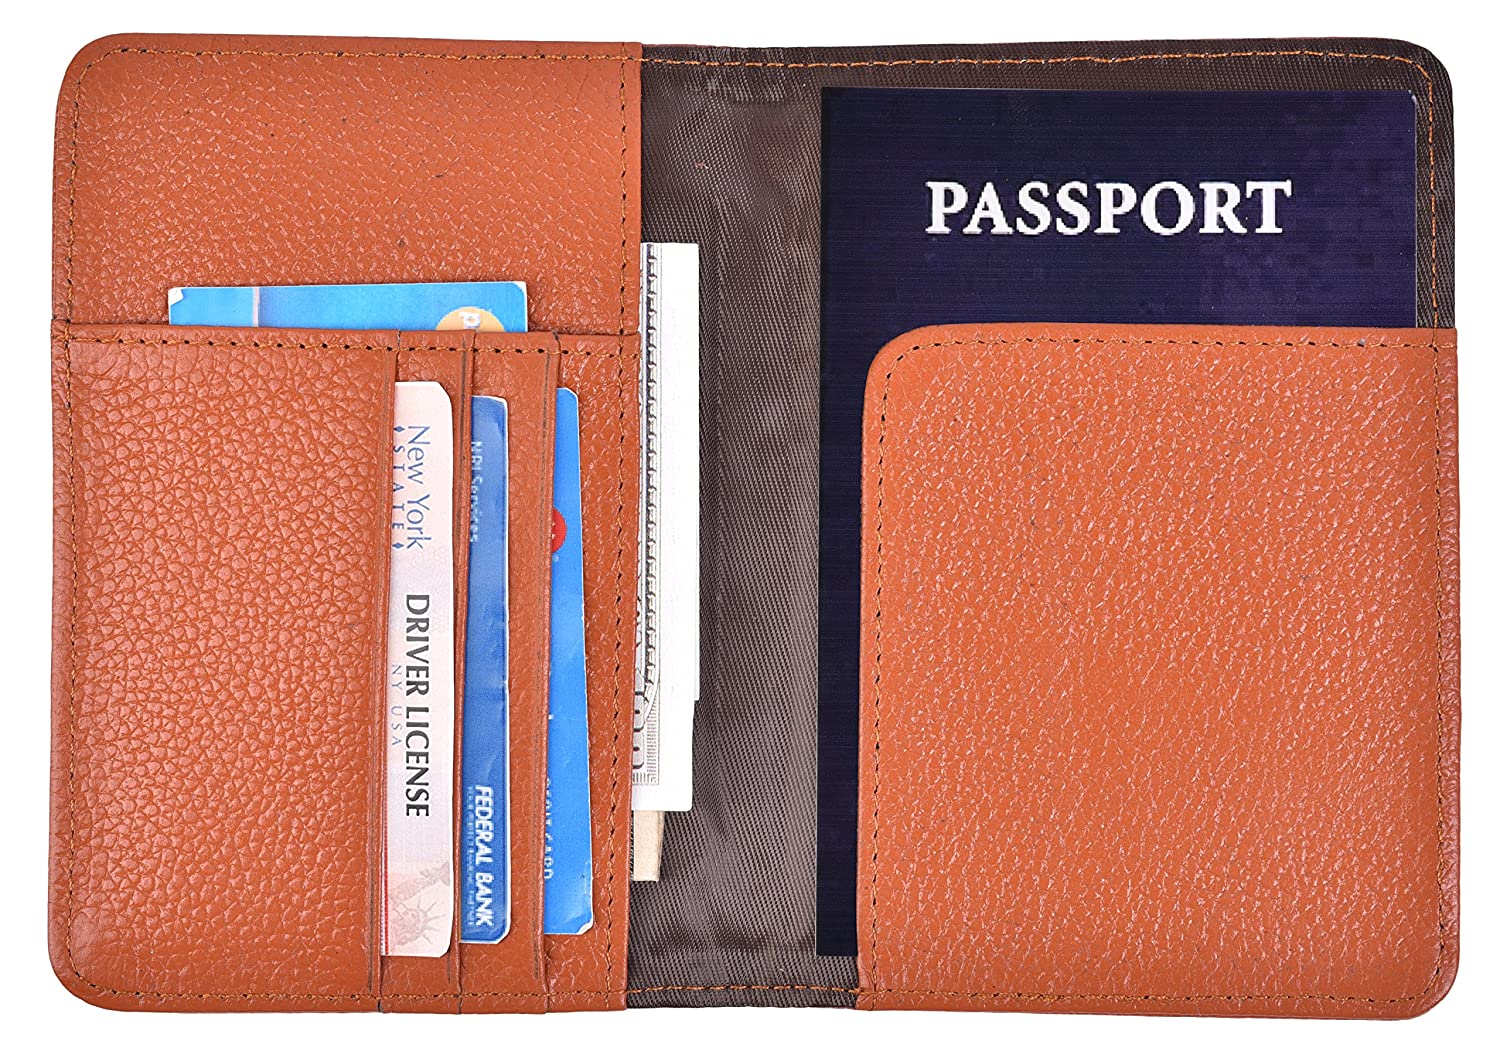 Yeeasy Passport Holder Genuine Leather Passport Cover Case Travel Wallet (Black) PW17040503CYE1